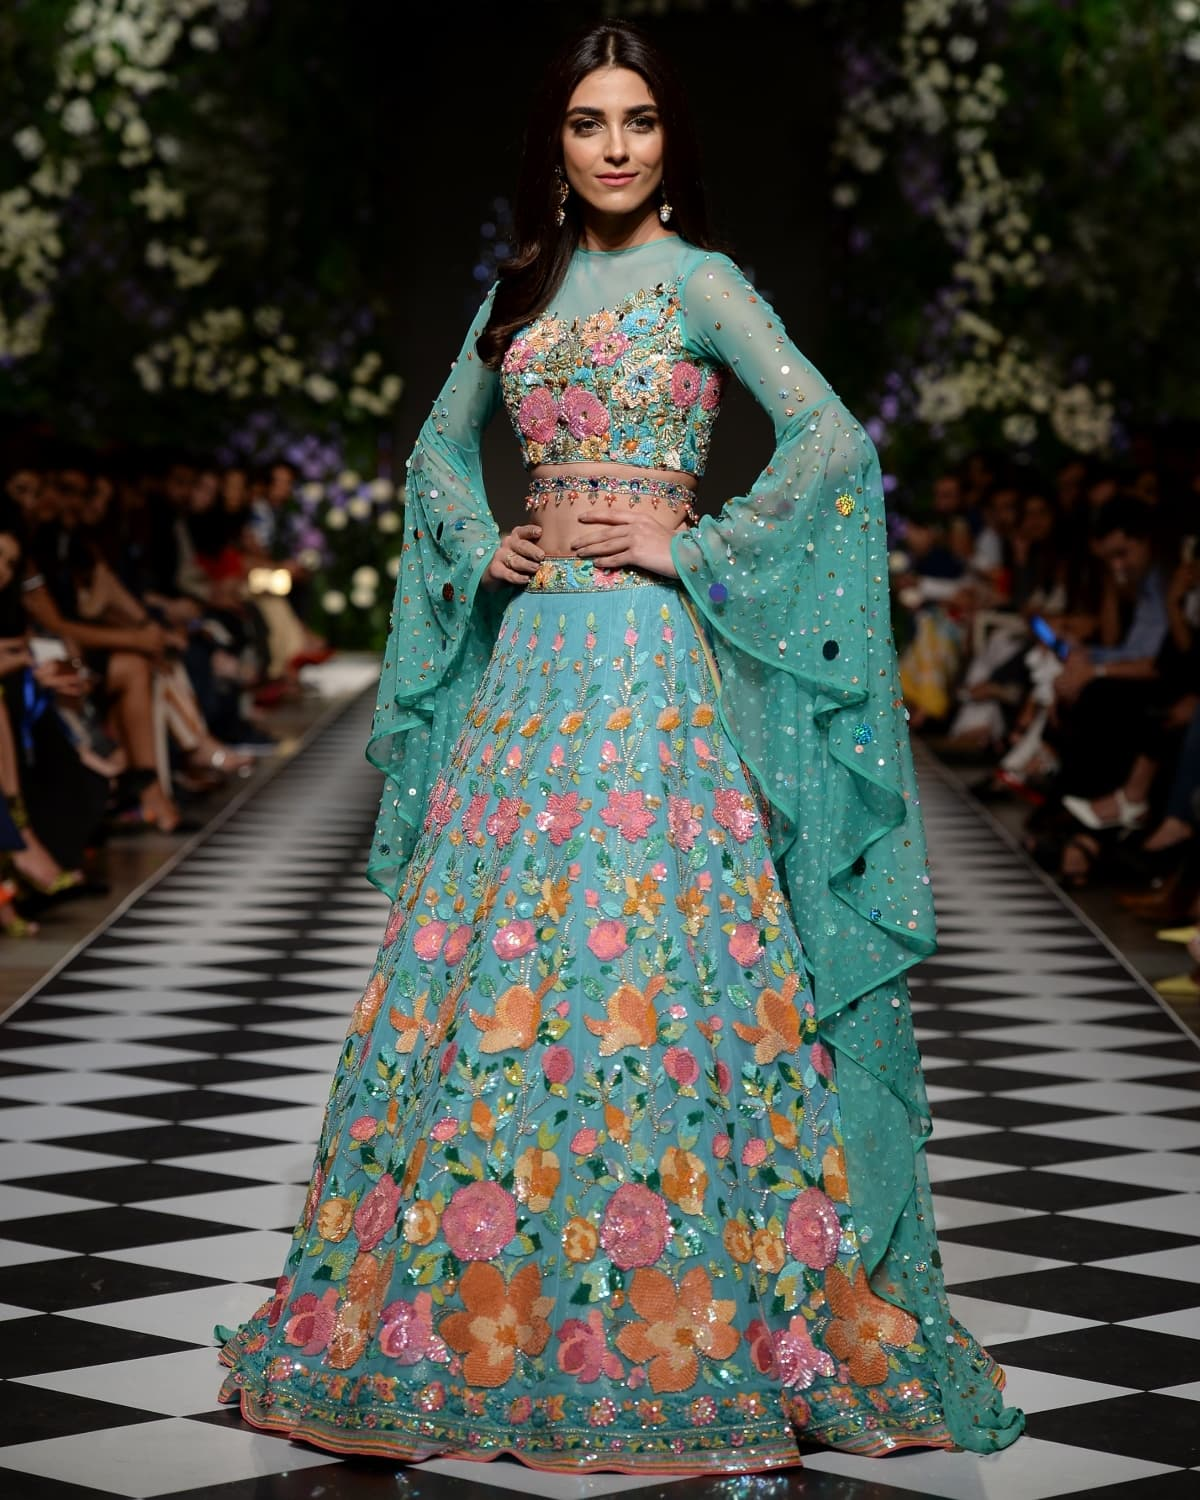 Maya Ali was the showstopper for Nomi Ansari